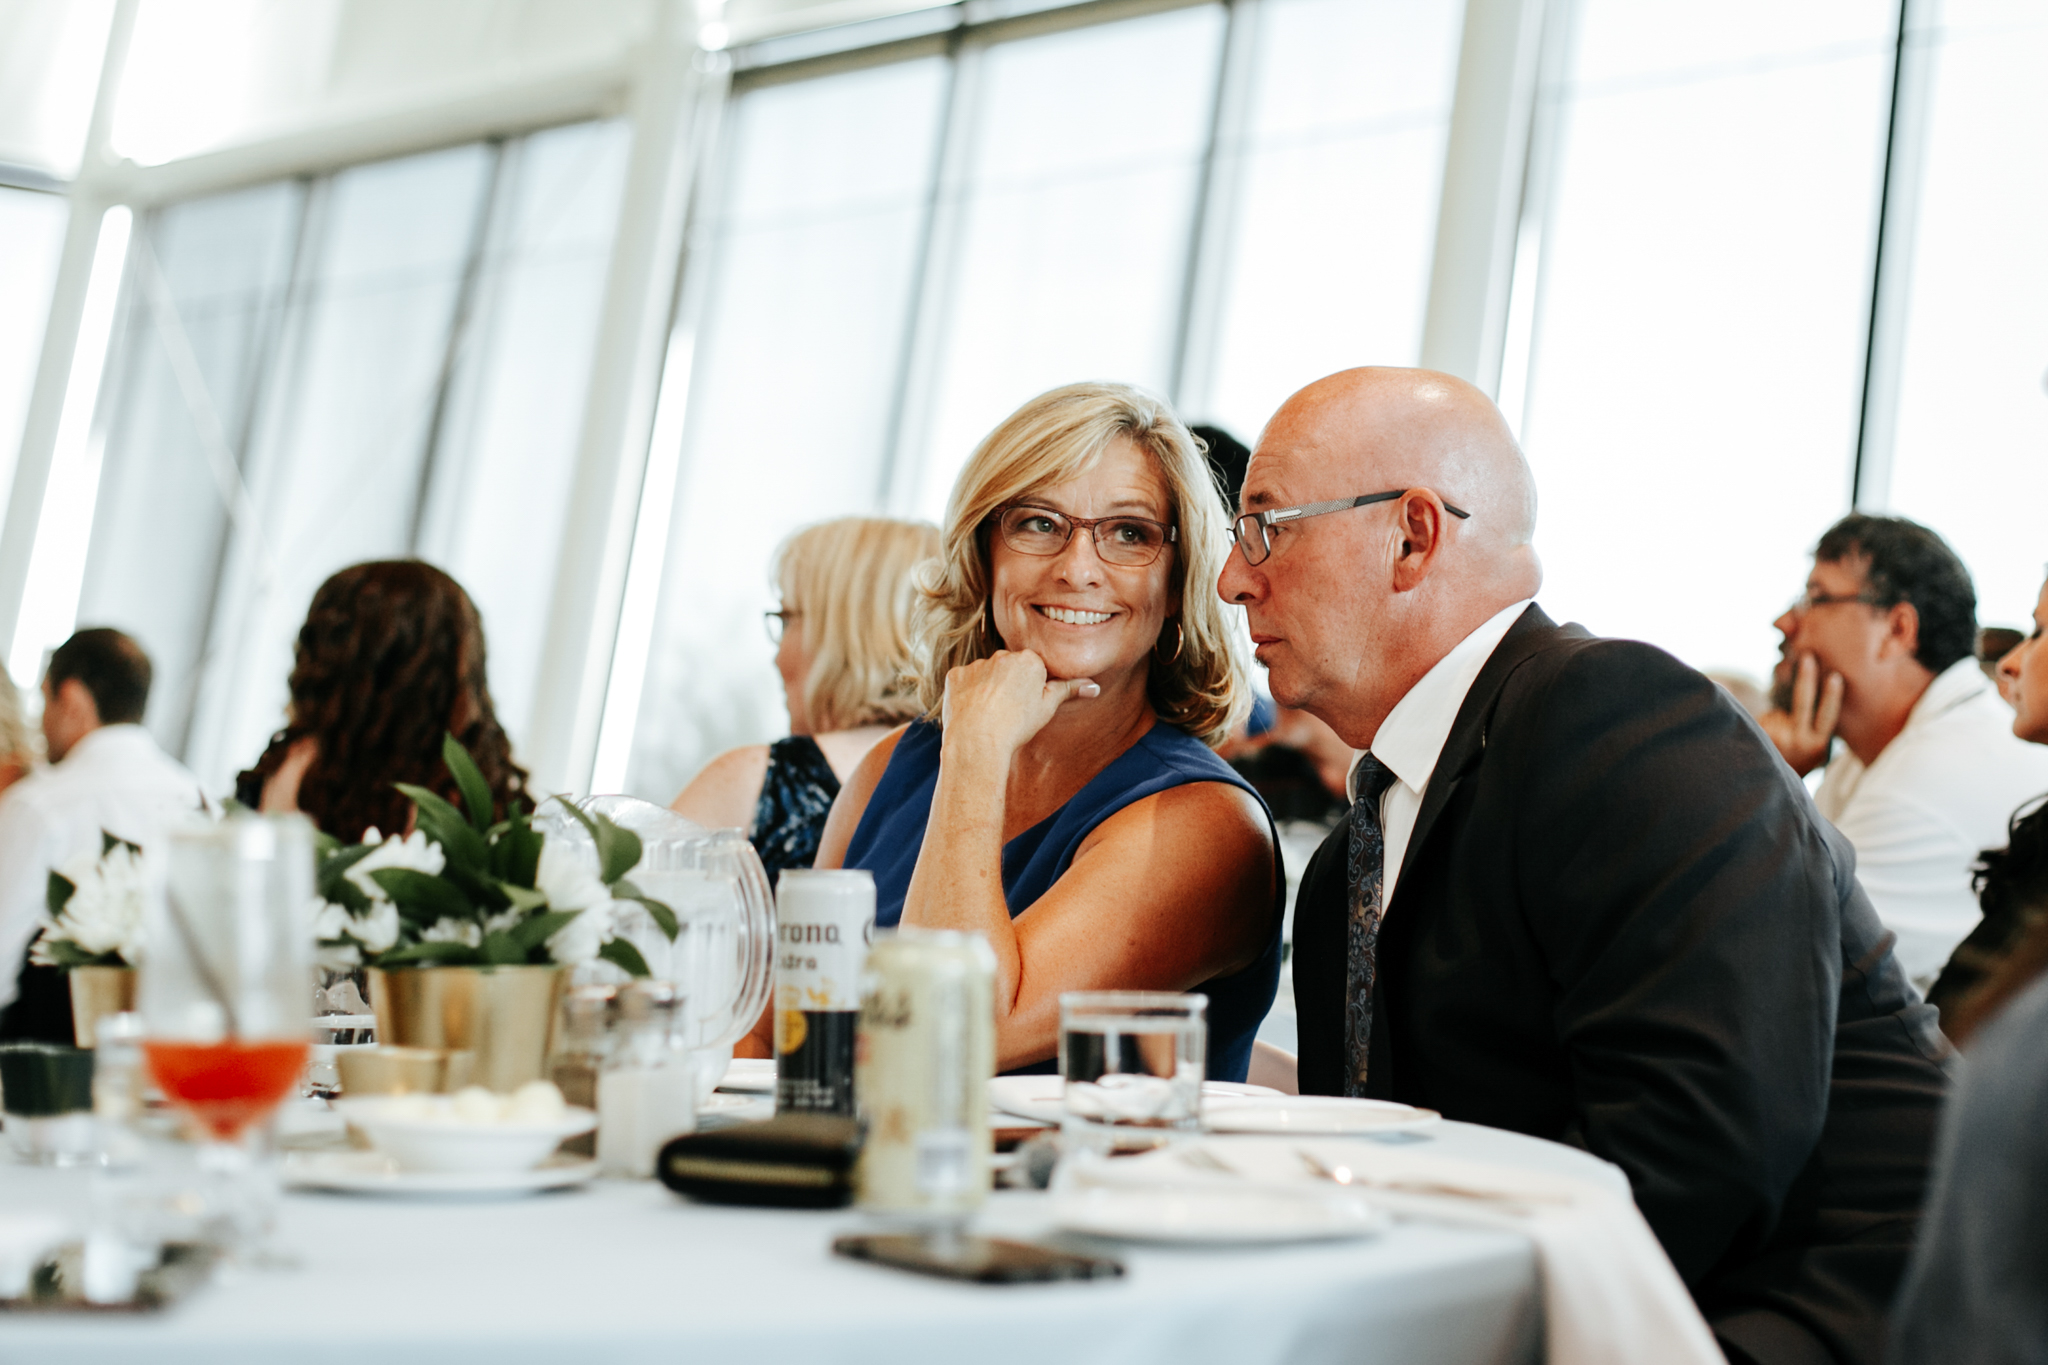 lethbridge-wedding-photographer-love-and-be-loved-photography-trent-danielle-galt-reception-picture-image-photo-174.jpg